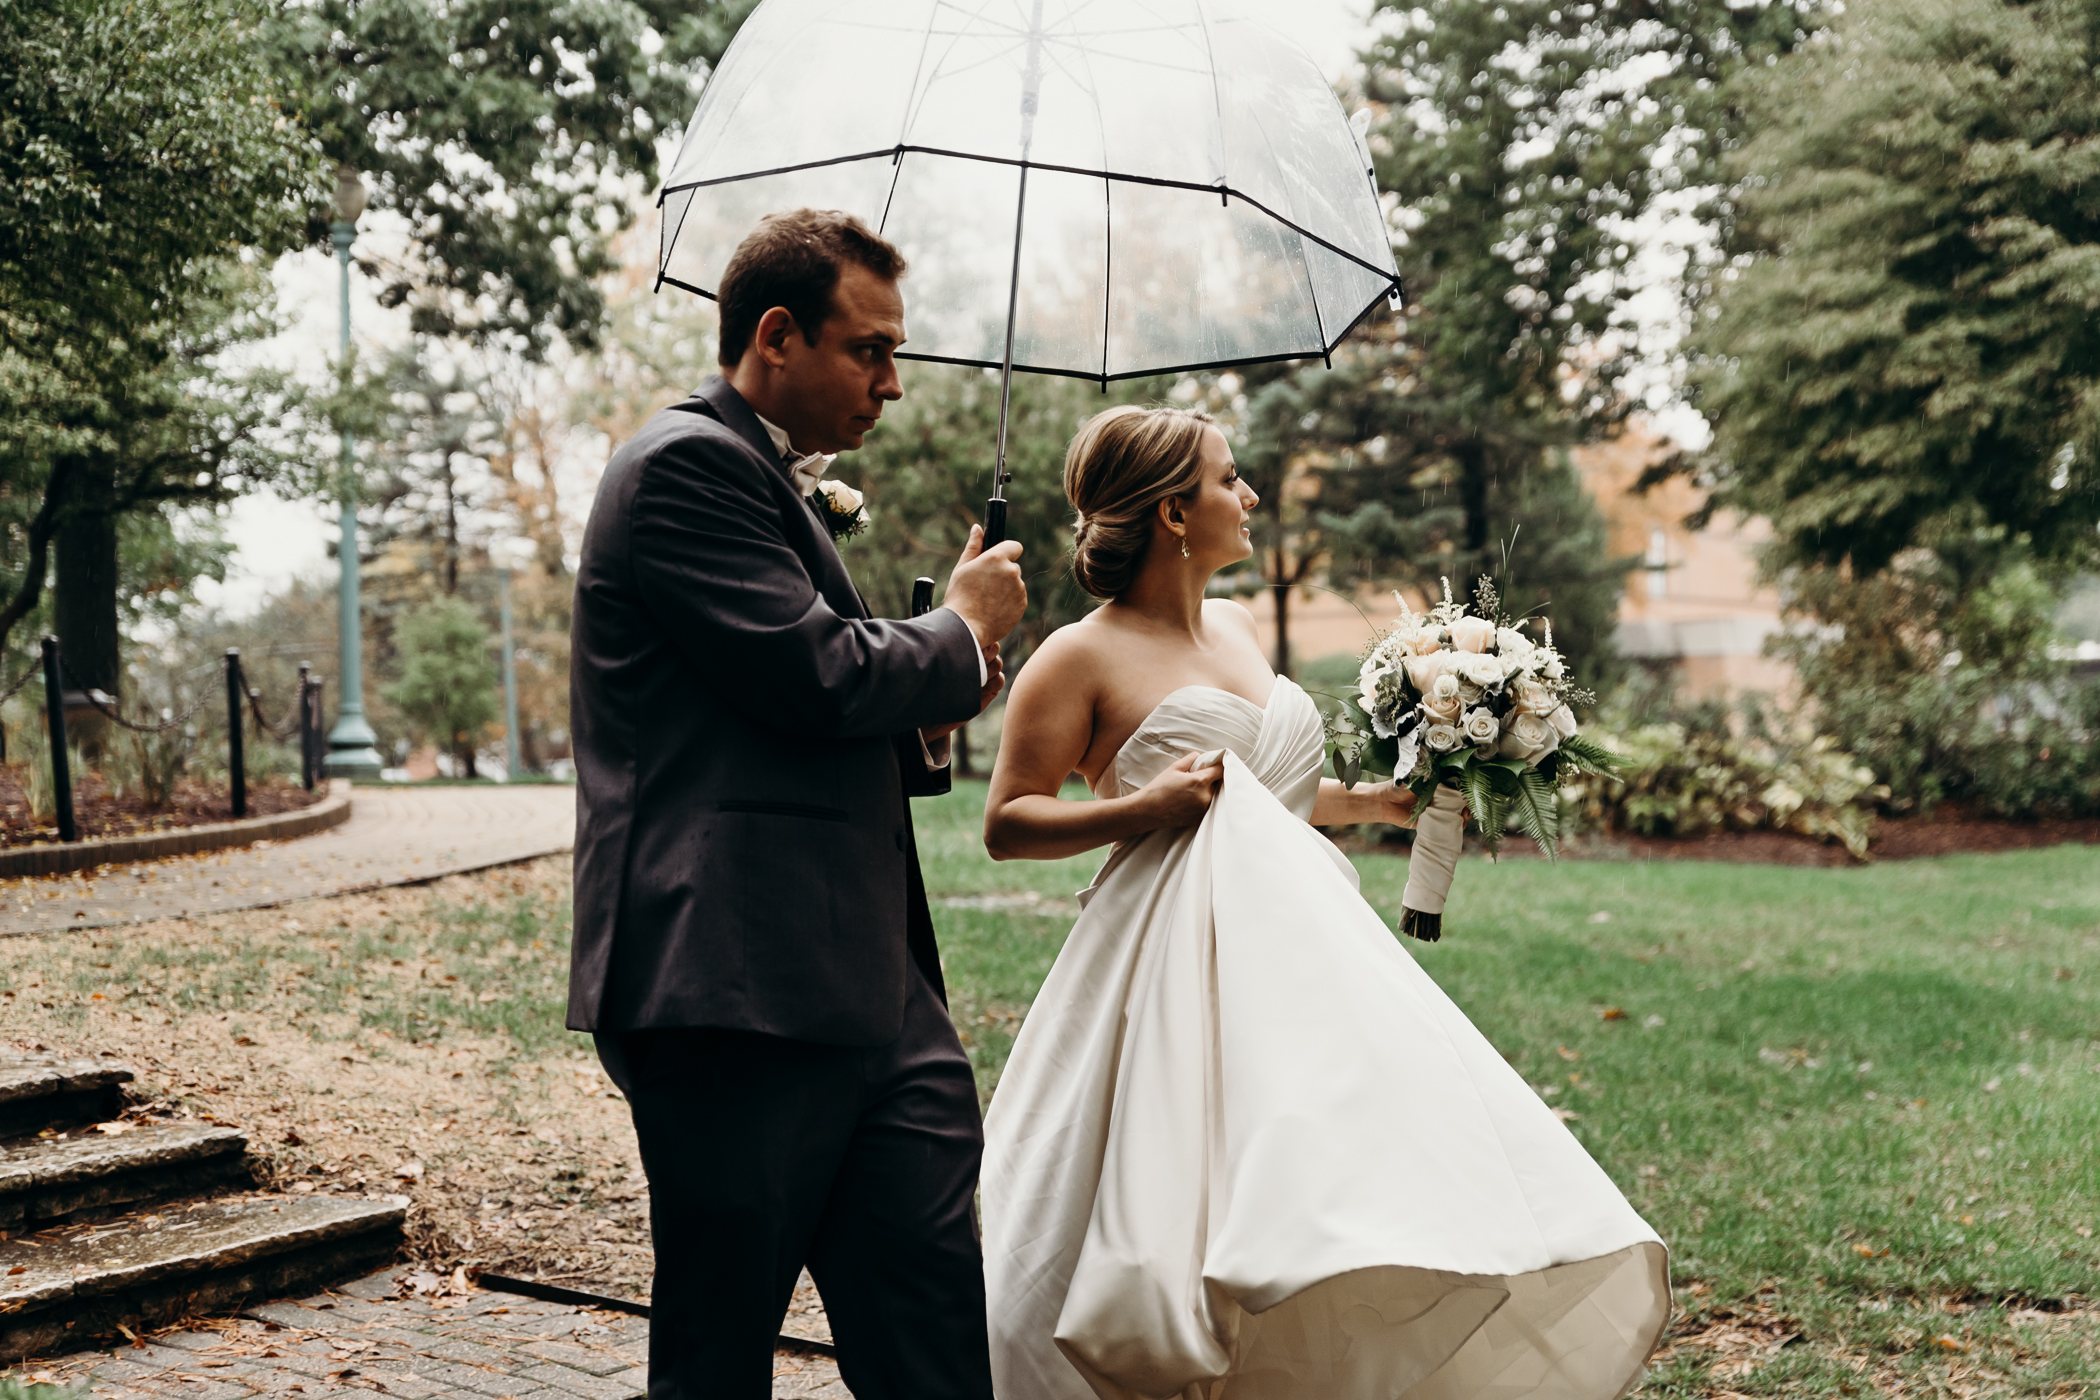 Groom holds umbrella for bride as she carries her dress